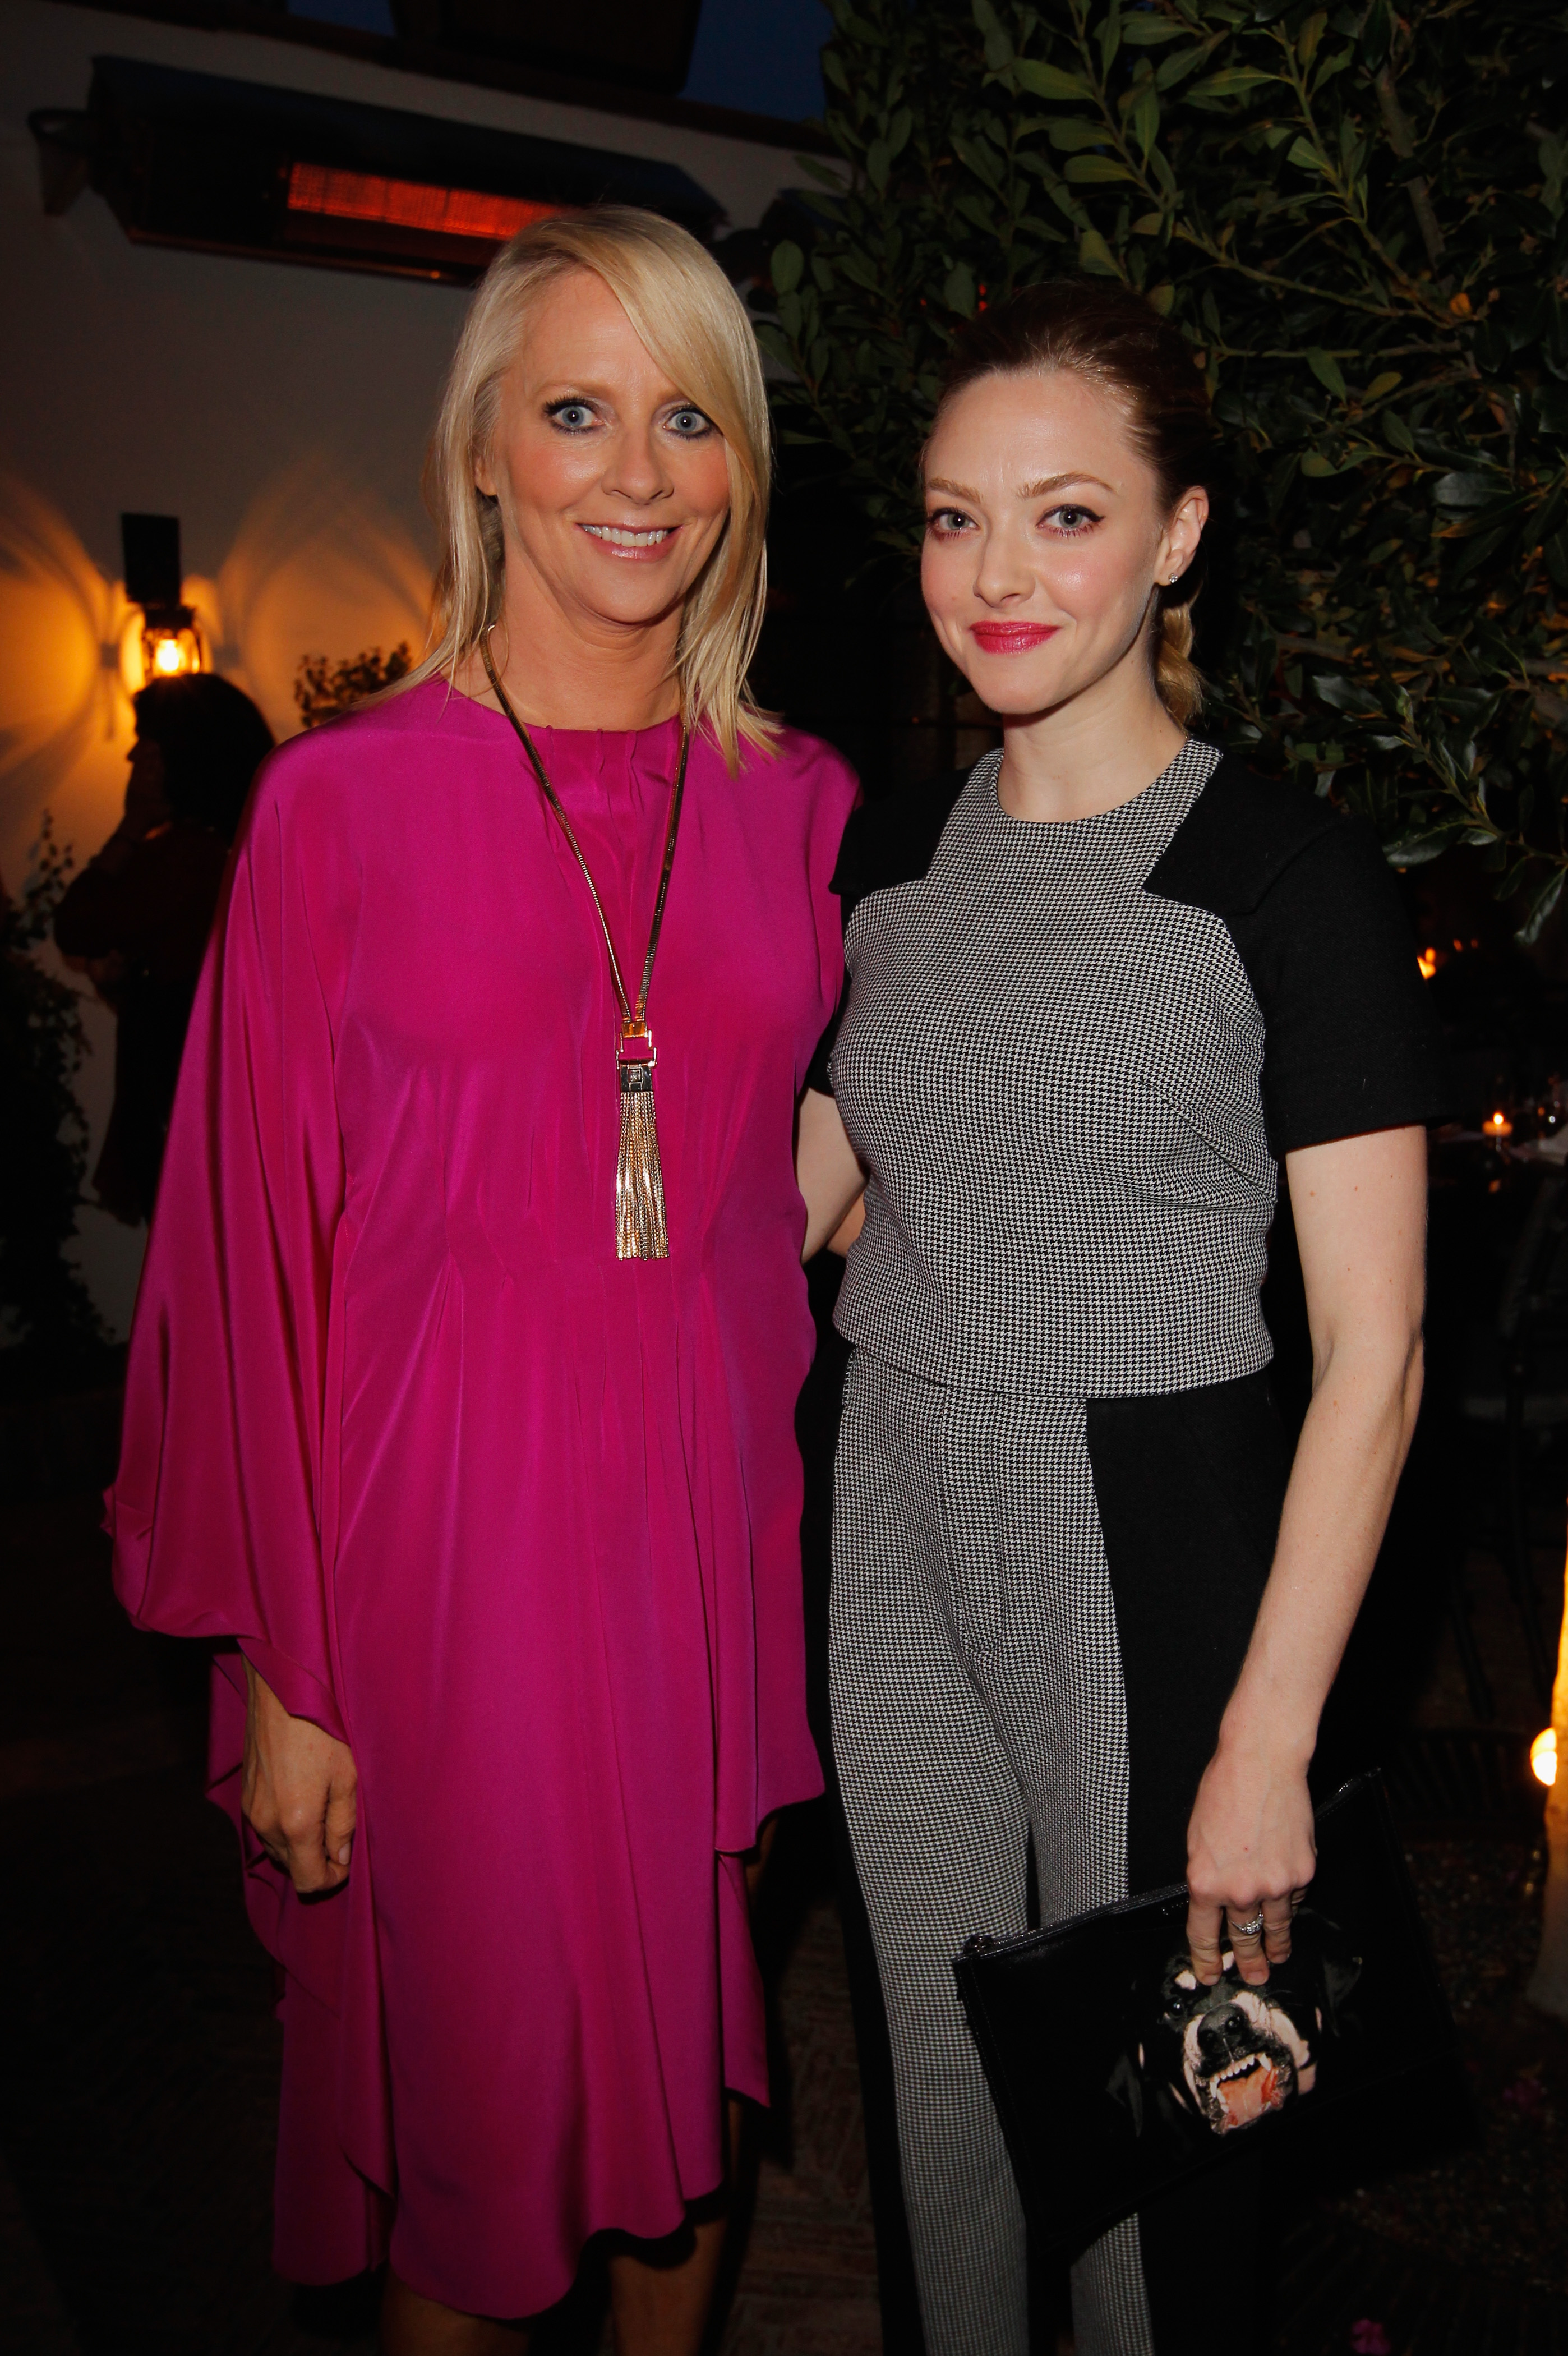 Amanda Seyfried posed with Allure magazine's editor in chief Linda Wells at the Look Better Naked launch party.